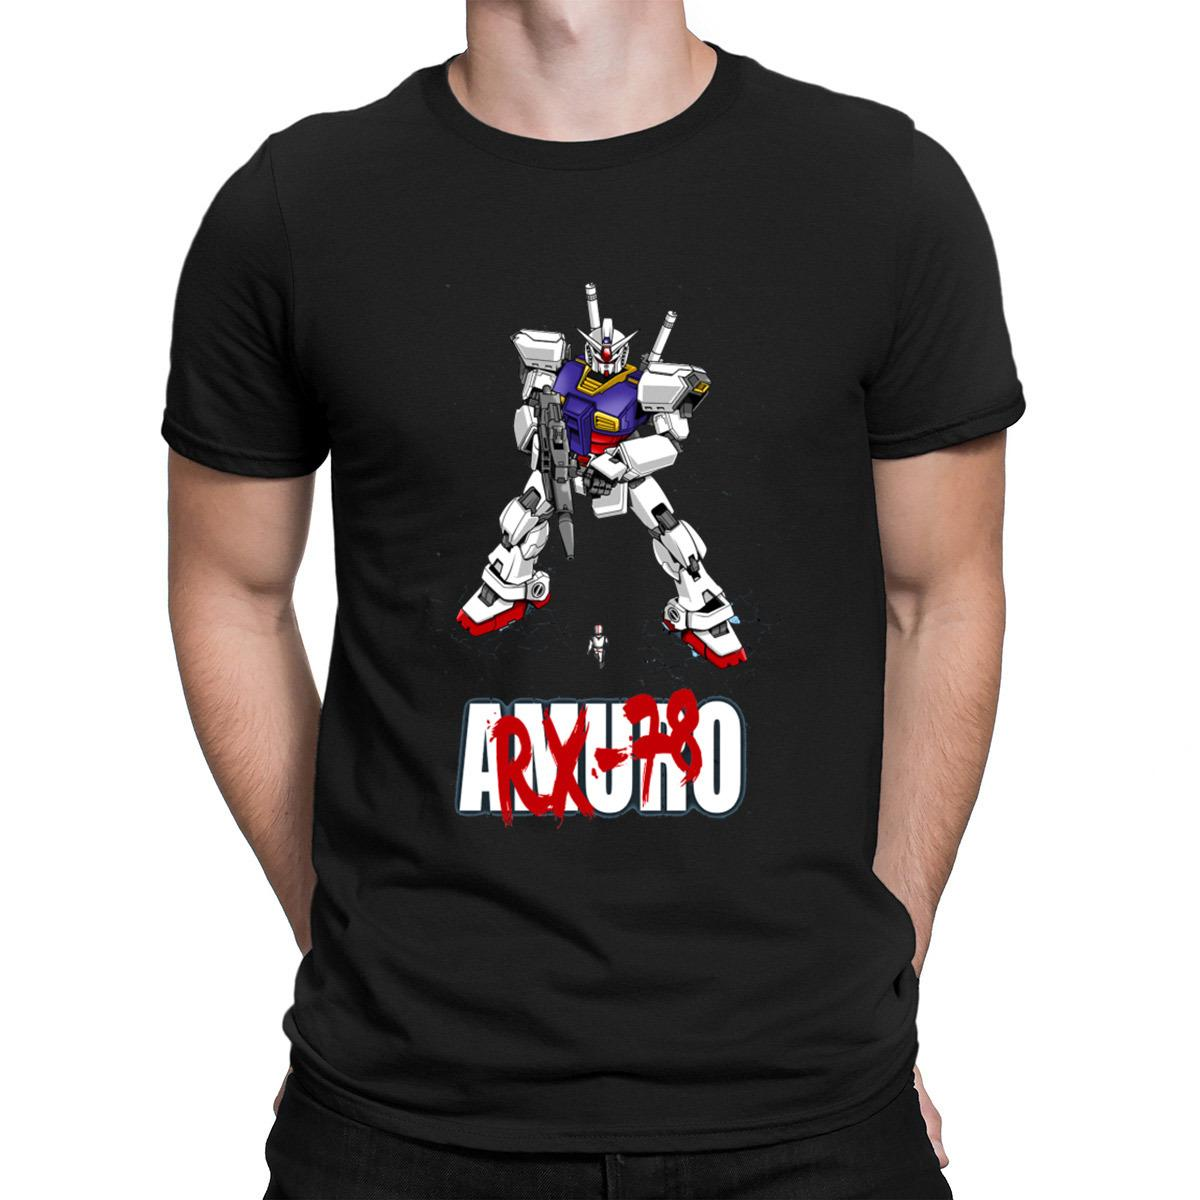 Gundam Rx 78 Tshirt Trendy Designer Fit Vintage T Shirt For Men 100% Cotton Costume Sunlight Popular